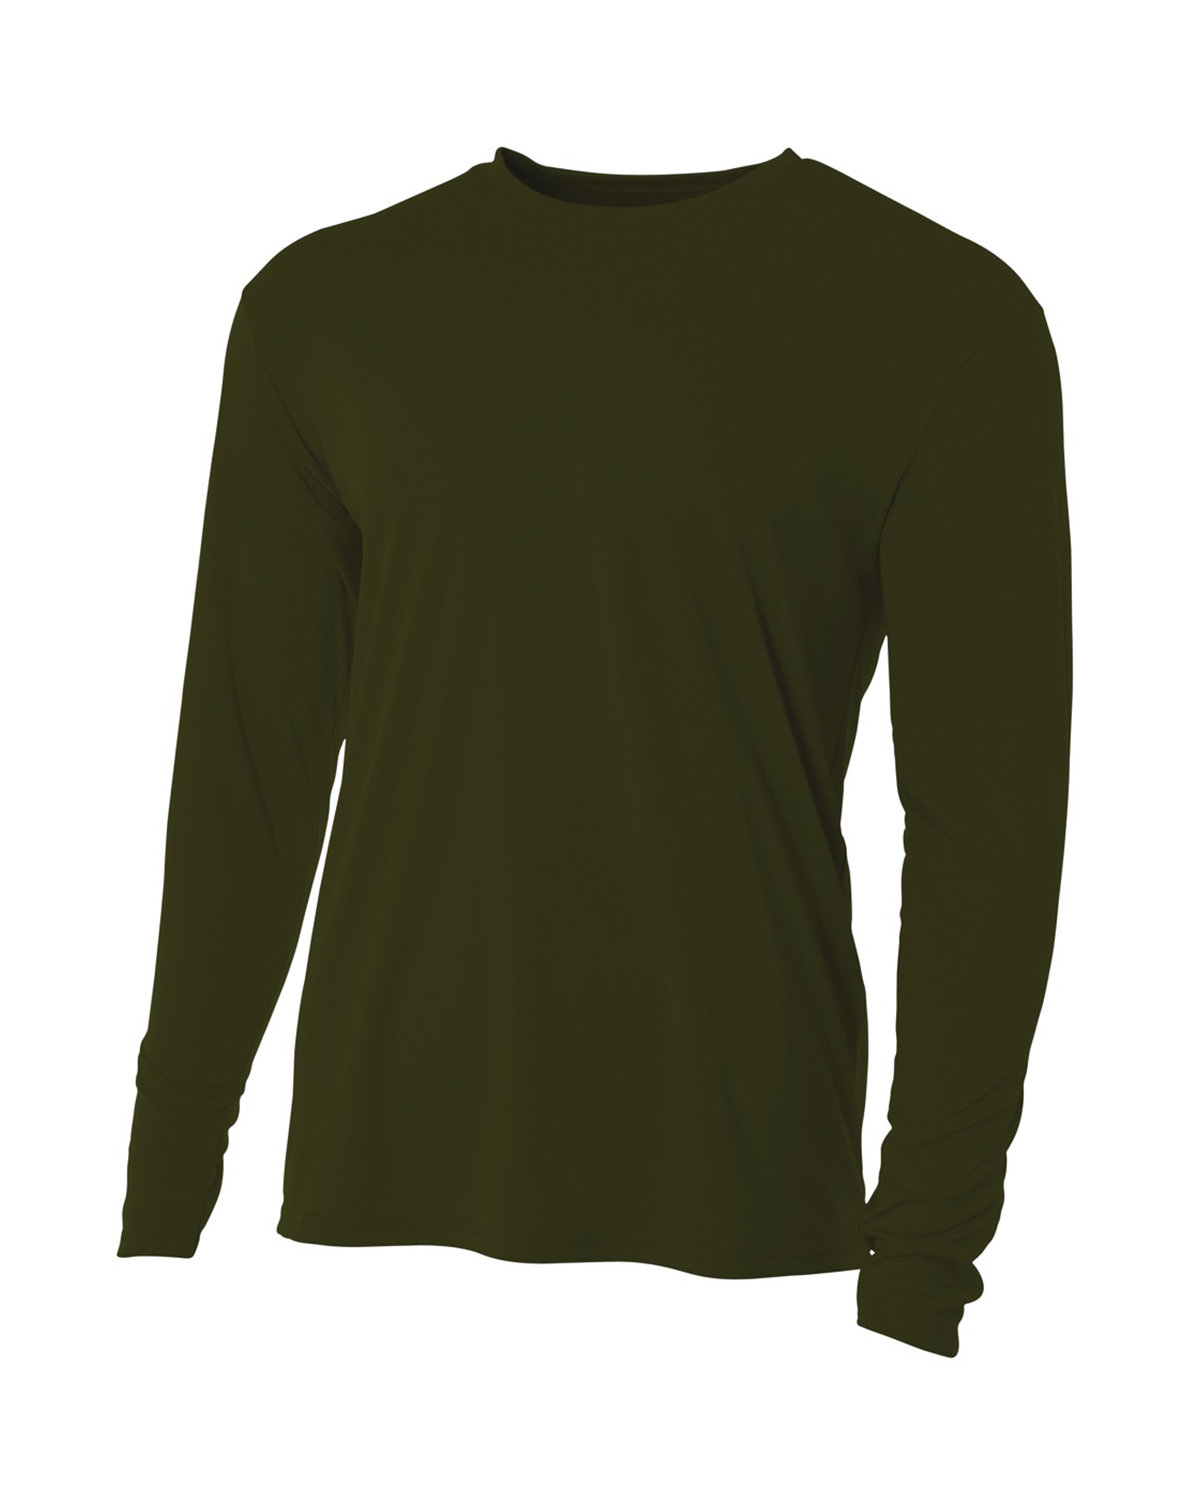 A4 Men's Cooling Performance Long Sleeve T-Shirt MILITARY GREEN